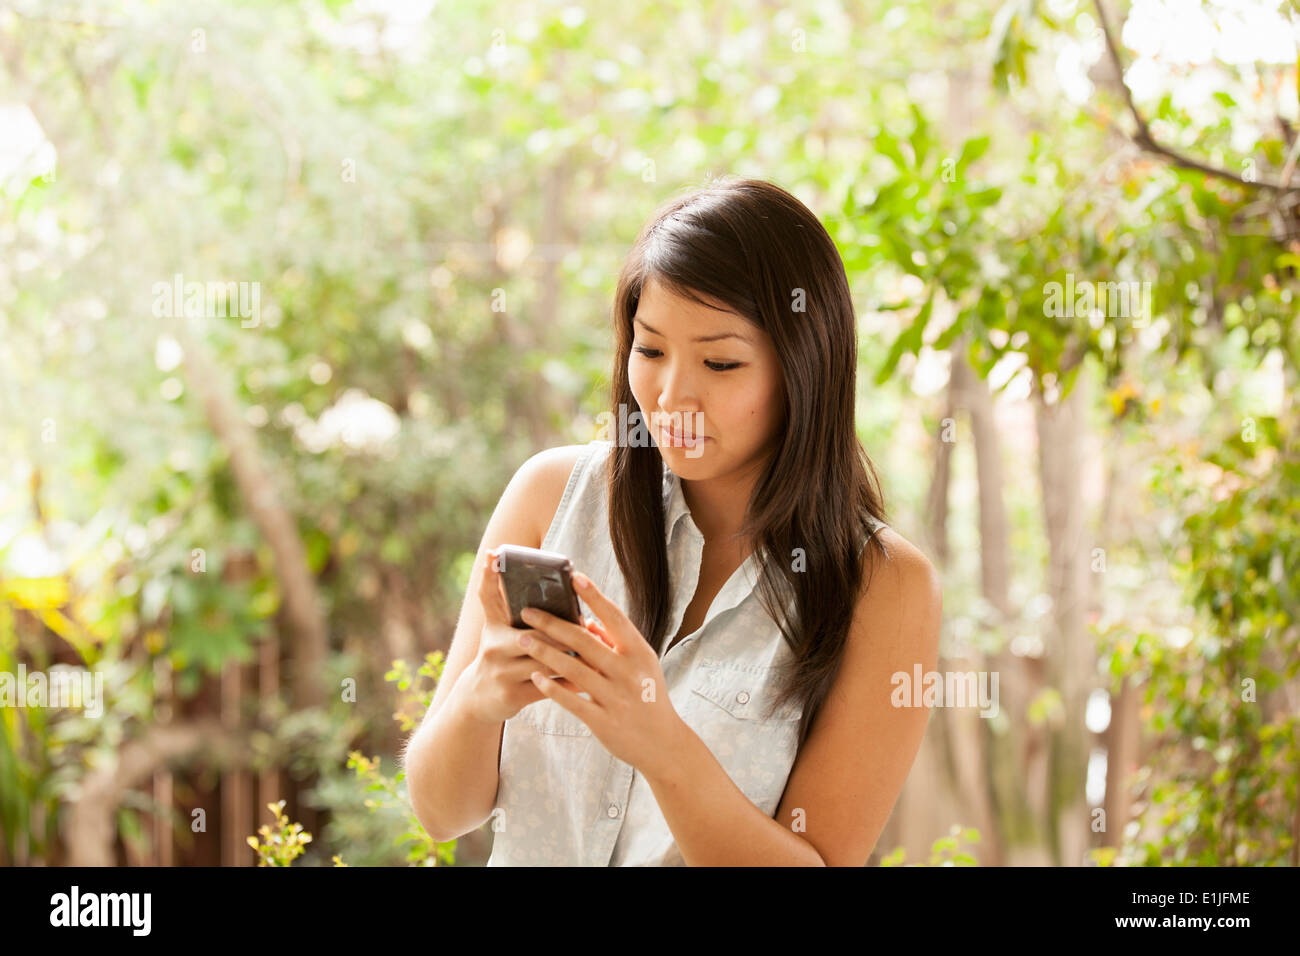 Young woman using smart phone - Stock Image